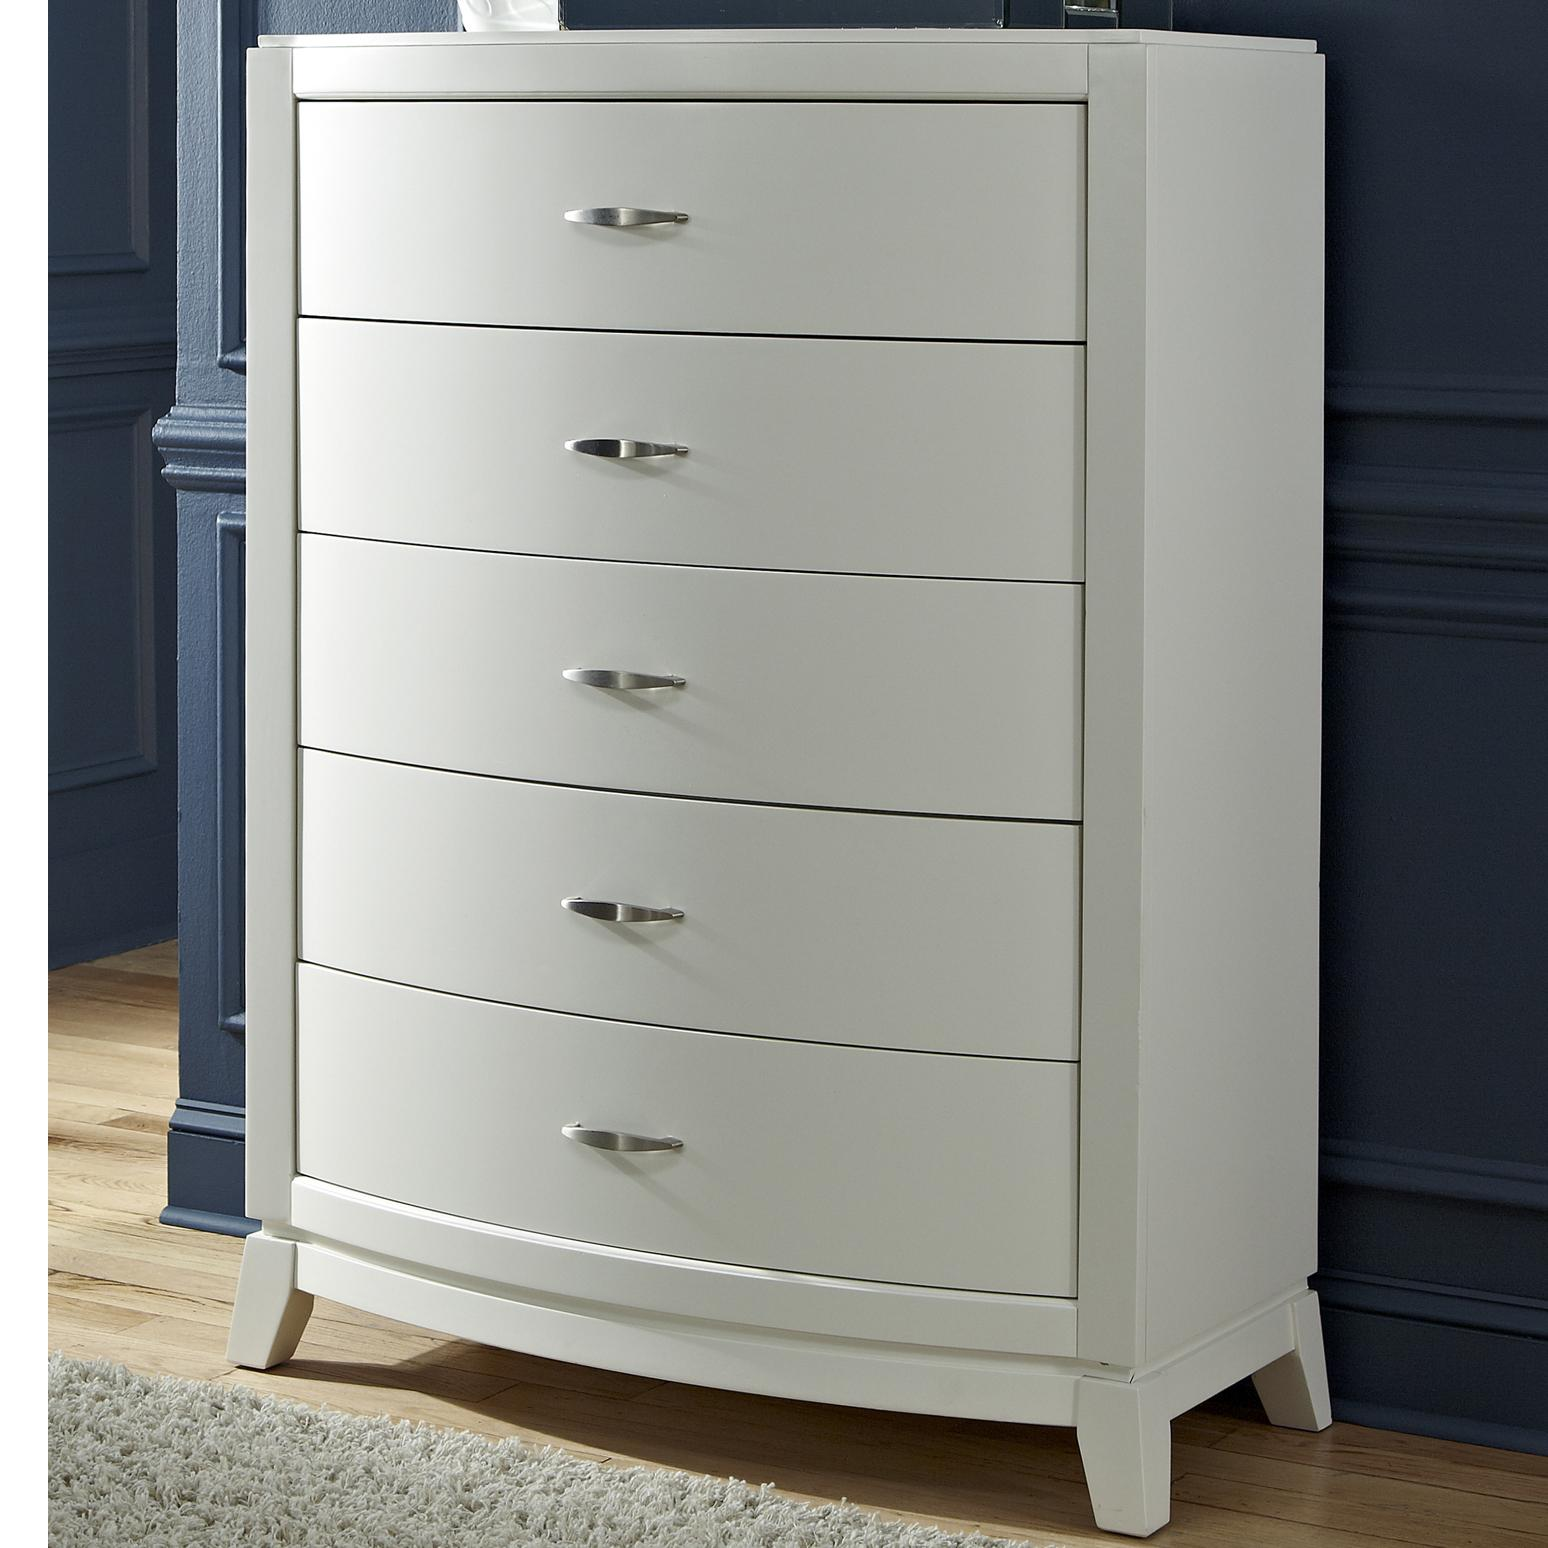 Liberty Furniture Avalon II 5 Drawer Chest - Item Number: 205-BR41